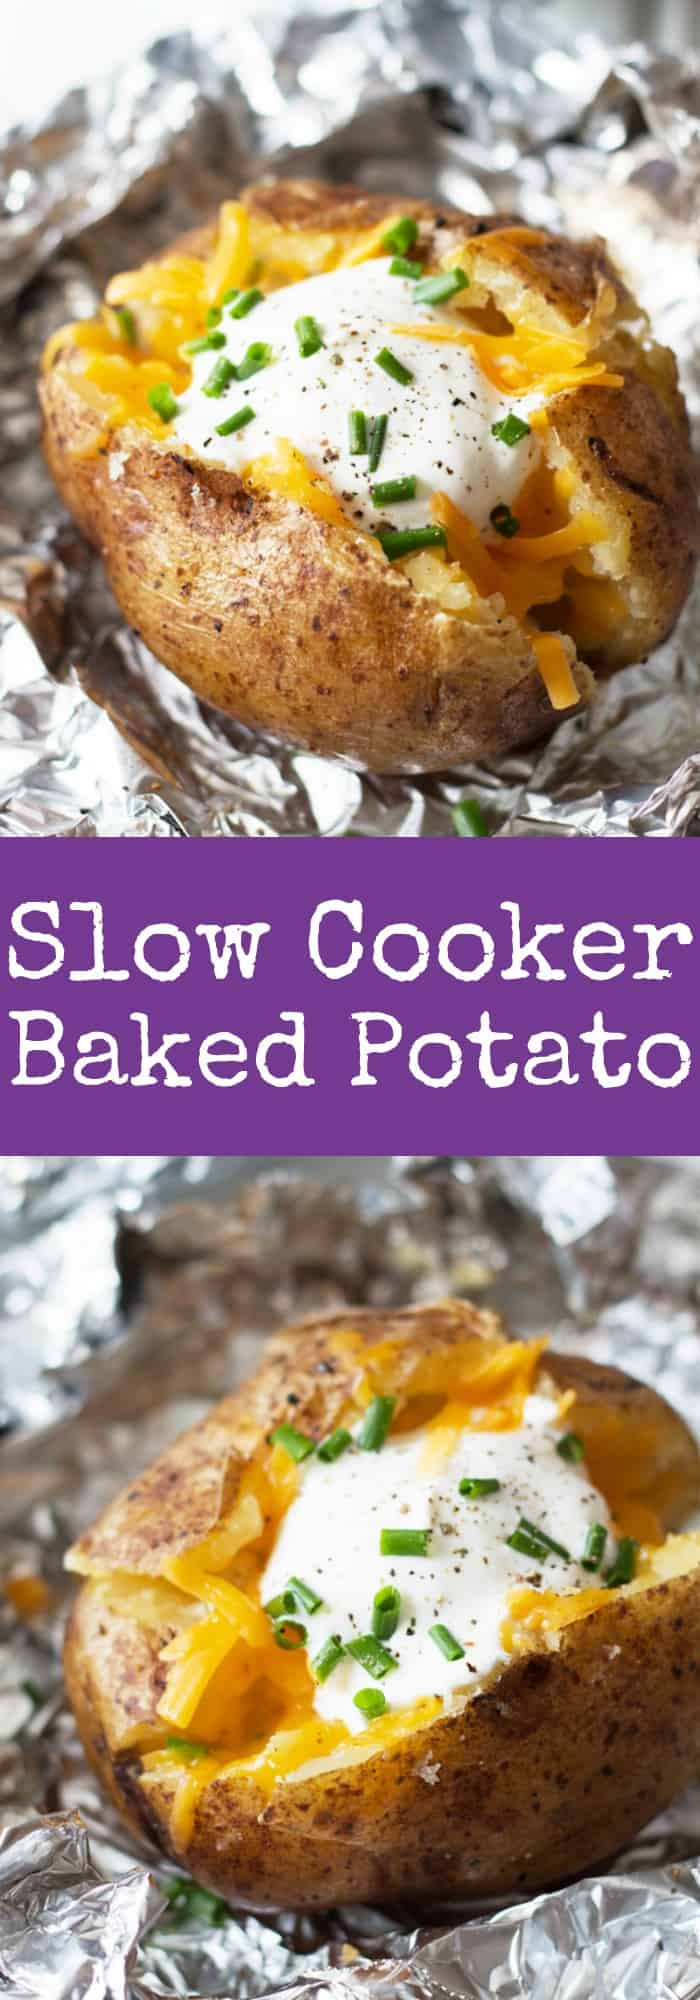 Slow Cooker Baked Potatoes - an easy way to come home to baked potatoes!   www.countrysidecravings.com